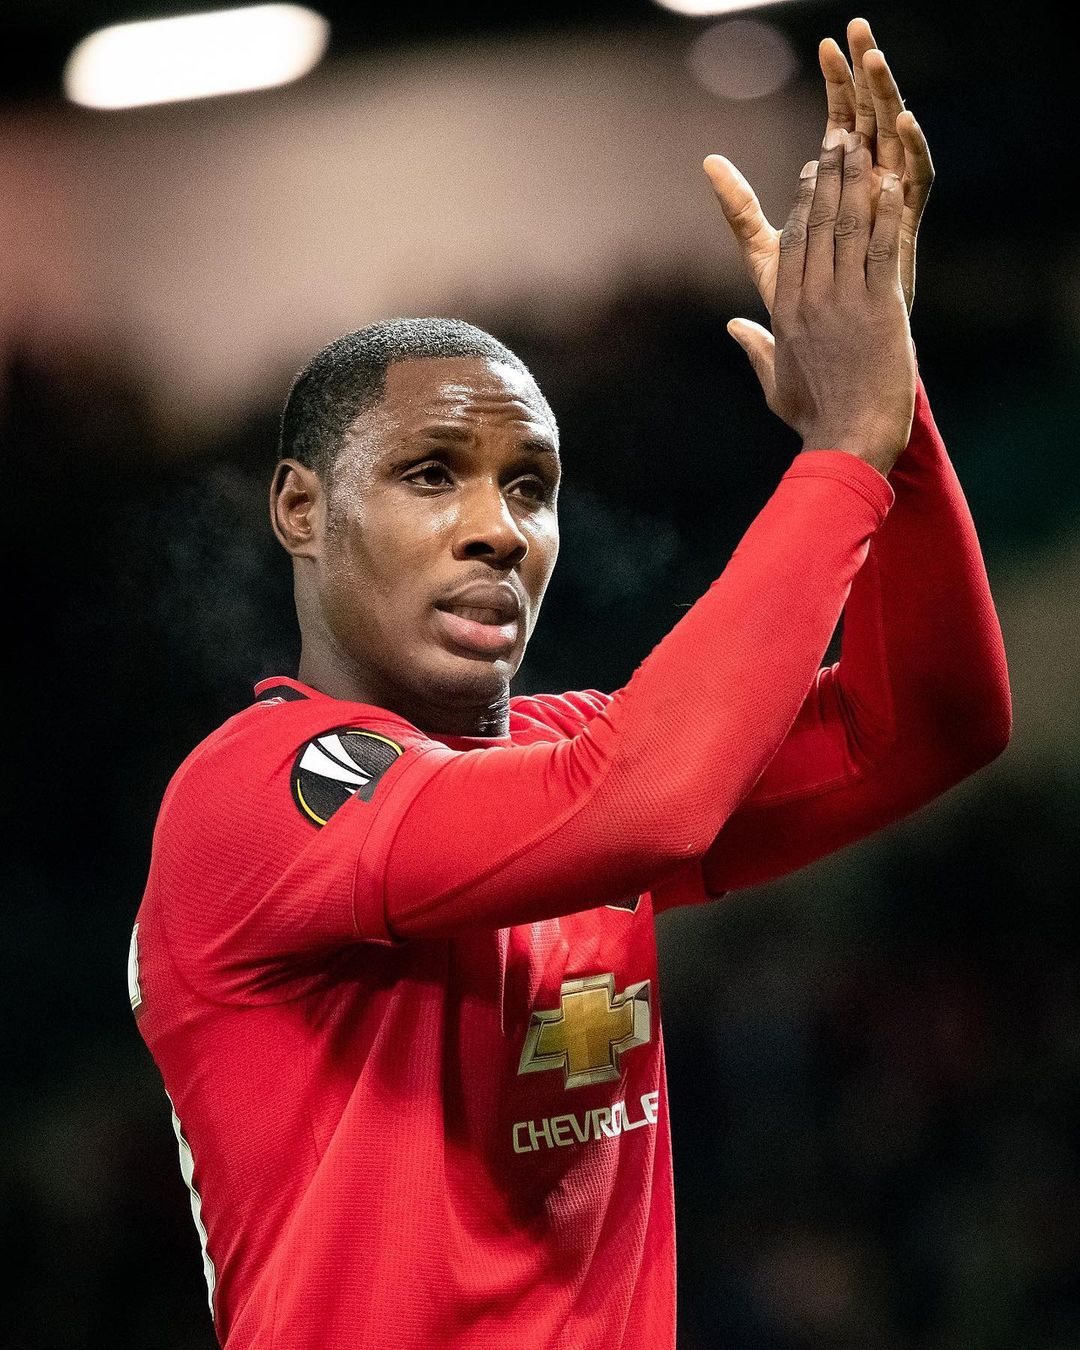 Ighalo: I Turned Down Mourinho And Tottenham To Join Manchester United